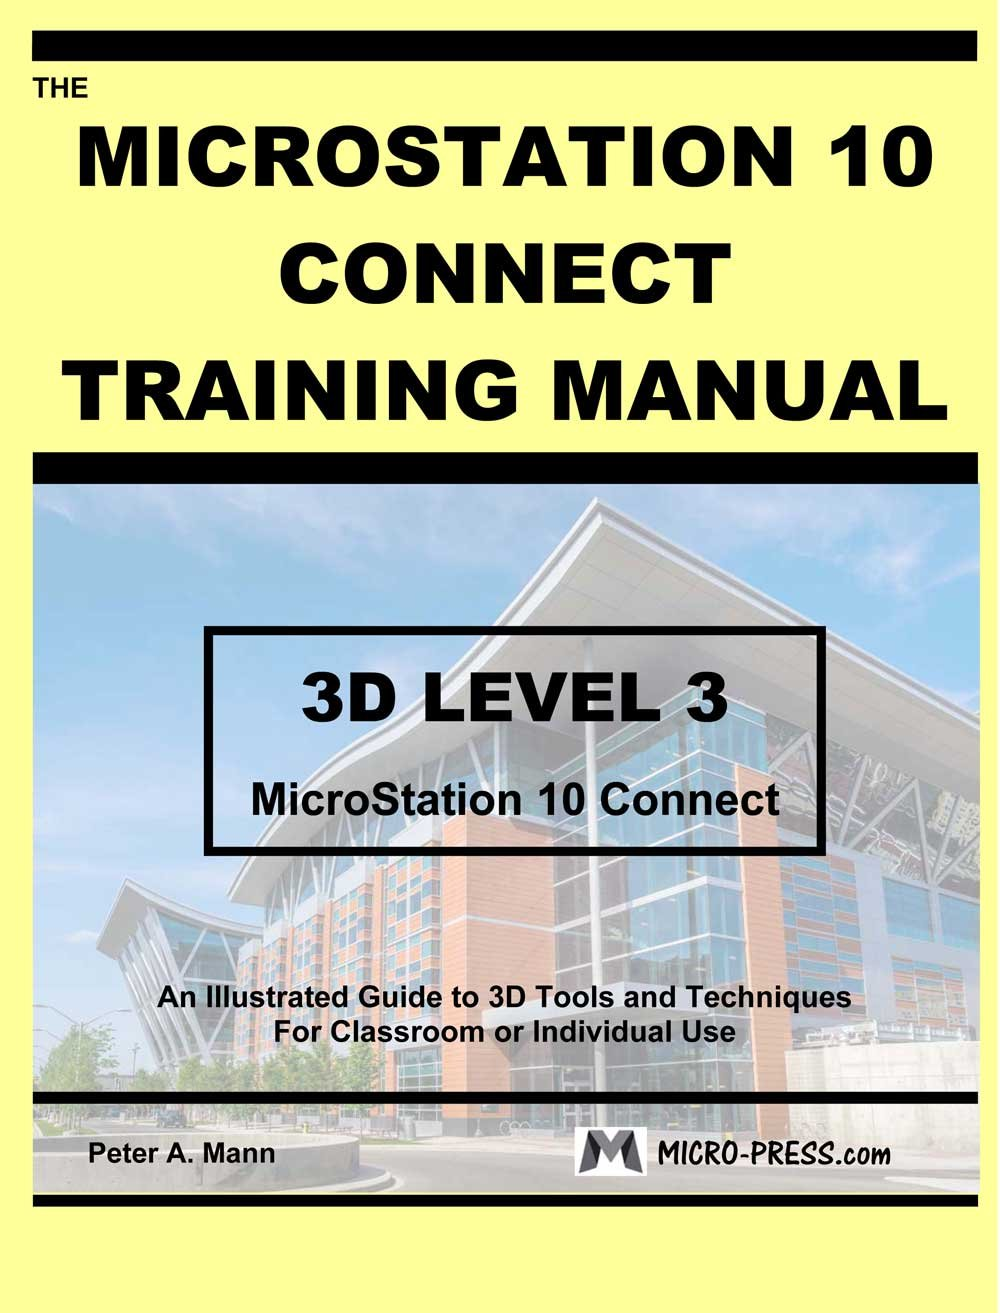 MicroStation 10 Connect Training Manual 3D Level 3: Peter A